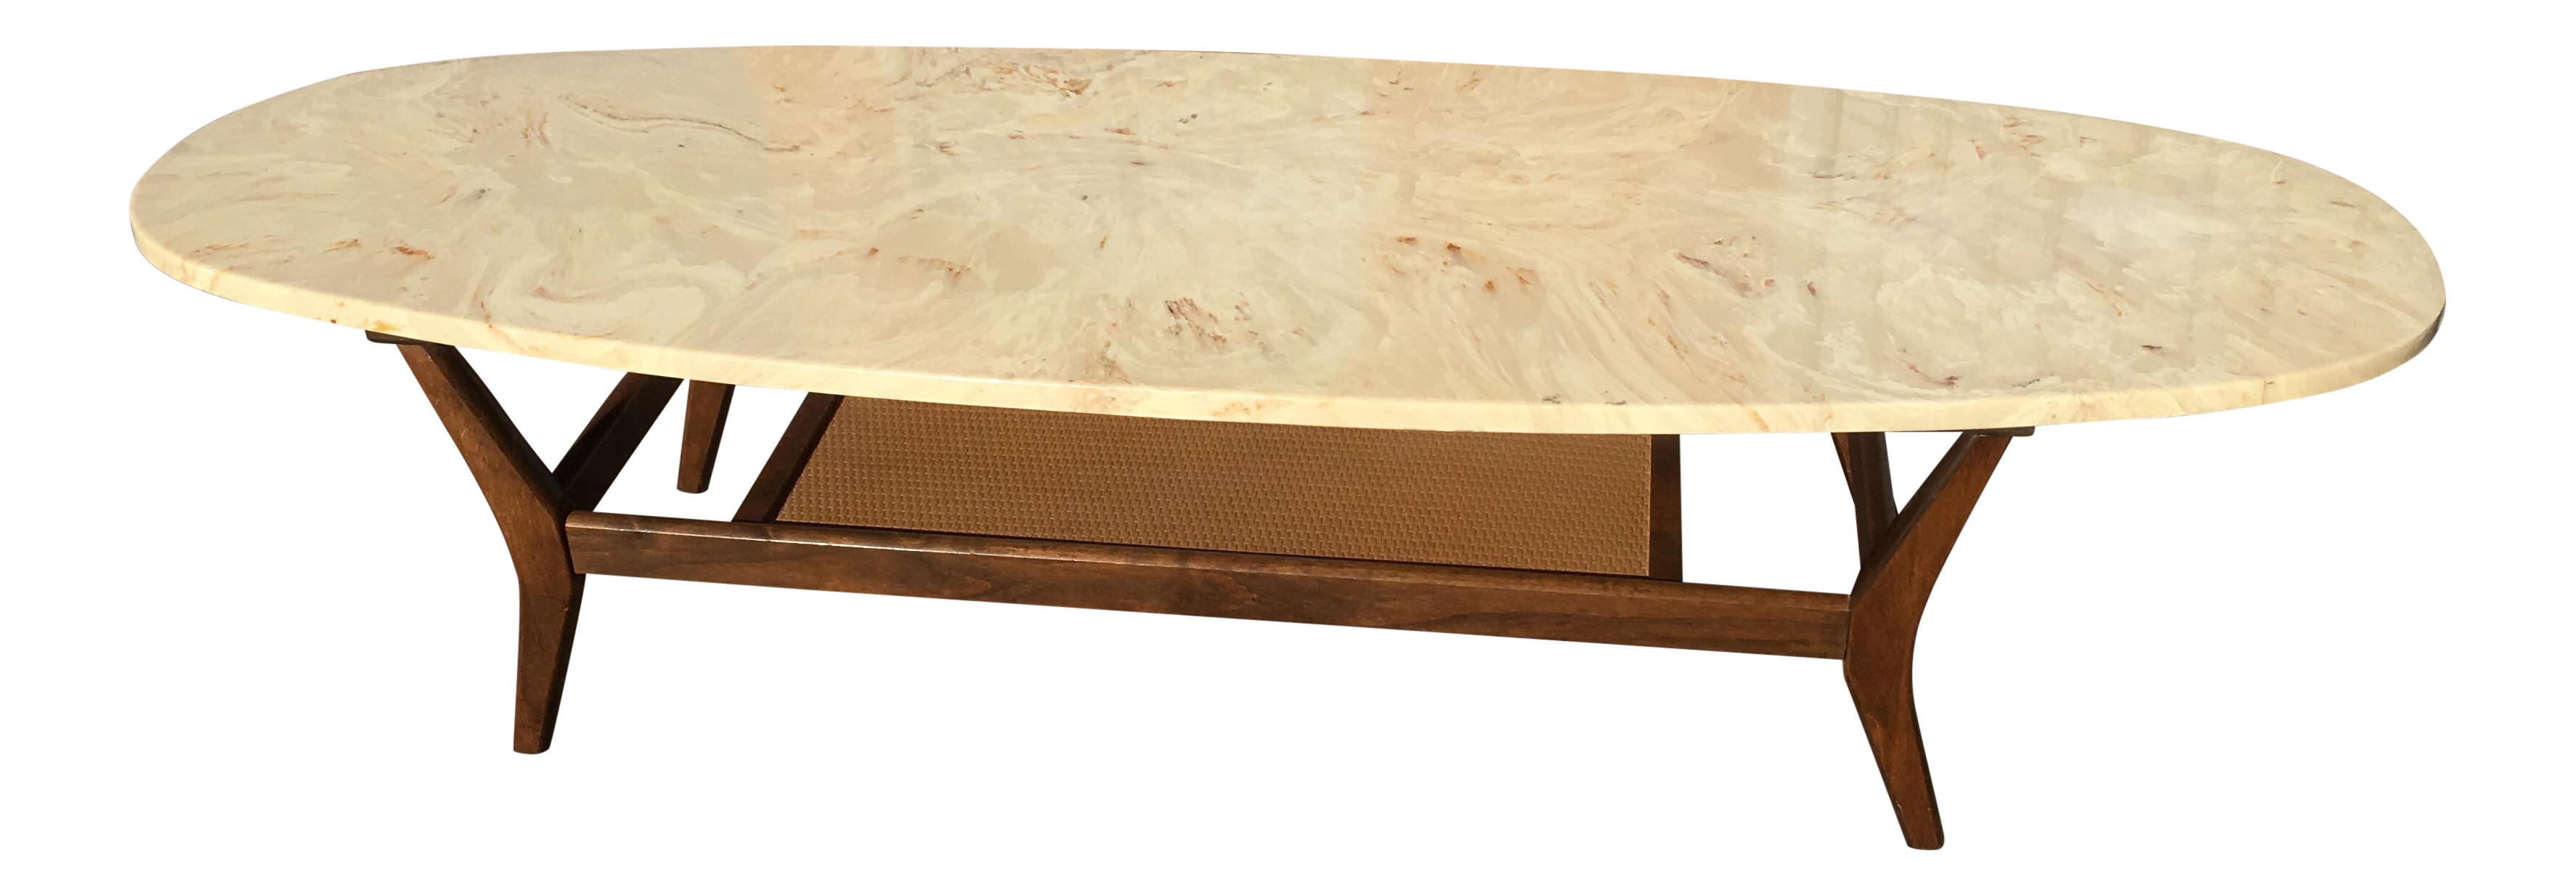 Mid Century Modern Marble Surfboard Coffee Table